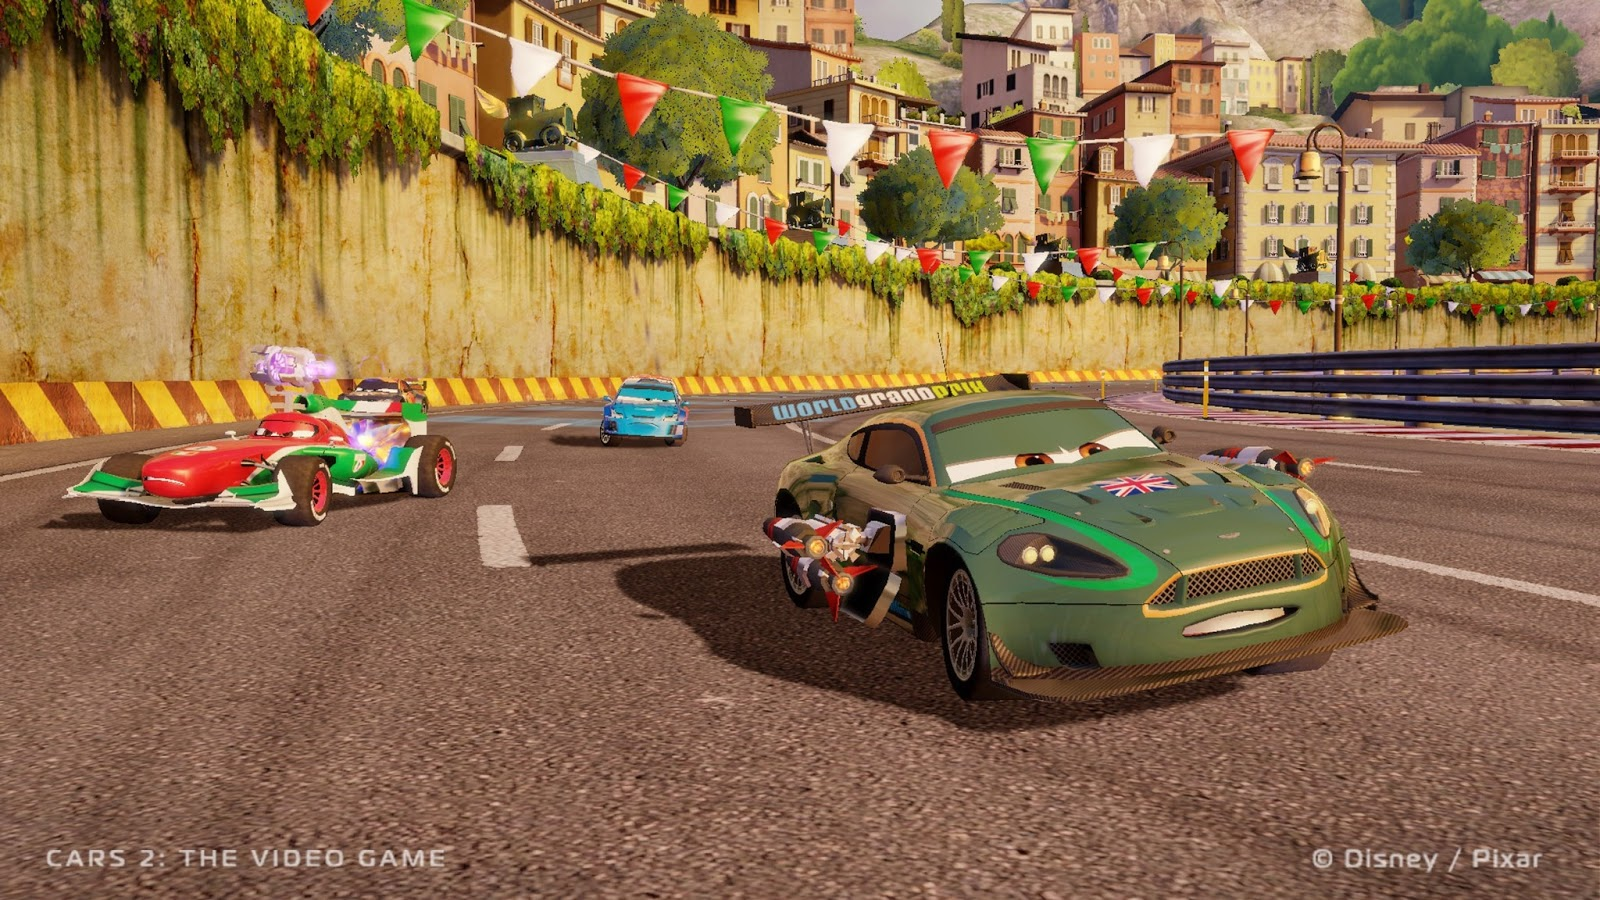 Xbox 360 Car Games : Cars xbox game free download games